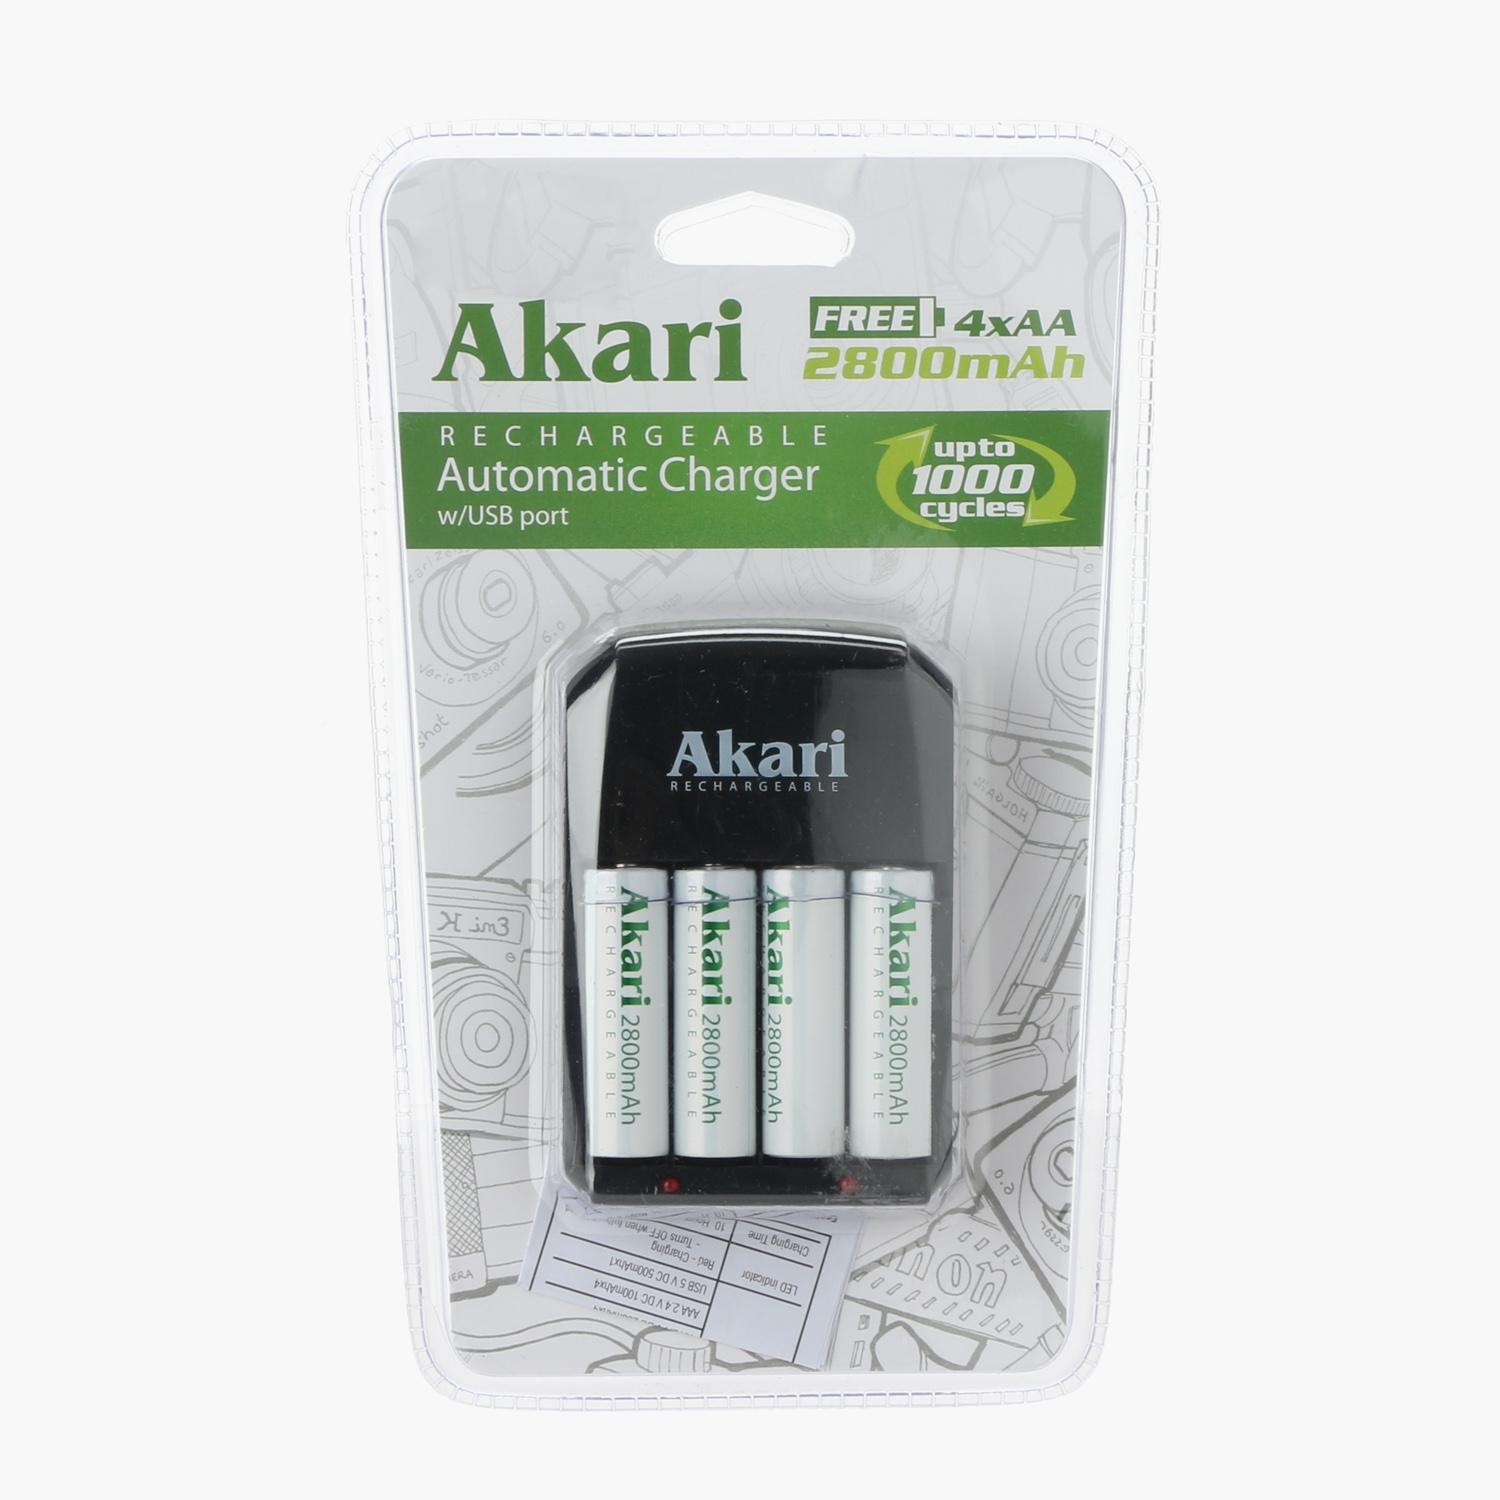 Electrical Battery For Sale Batteries Prices Brands E90 Electric Scooter Parts Diagram Akari Rechargeable Automatic Charger With Usb Port Arbc 802